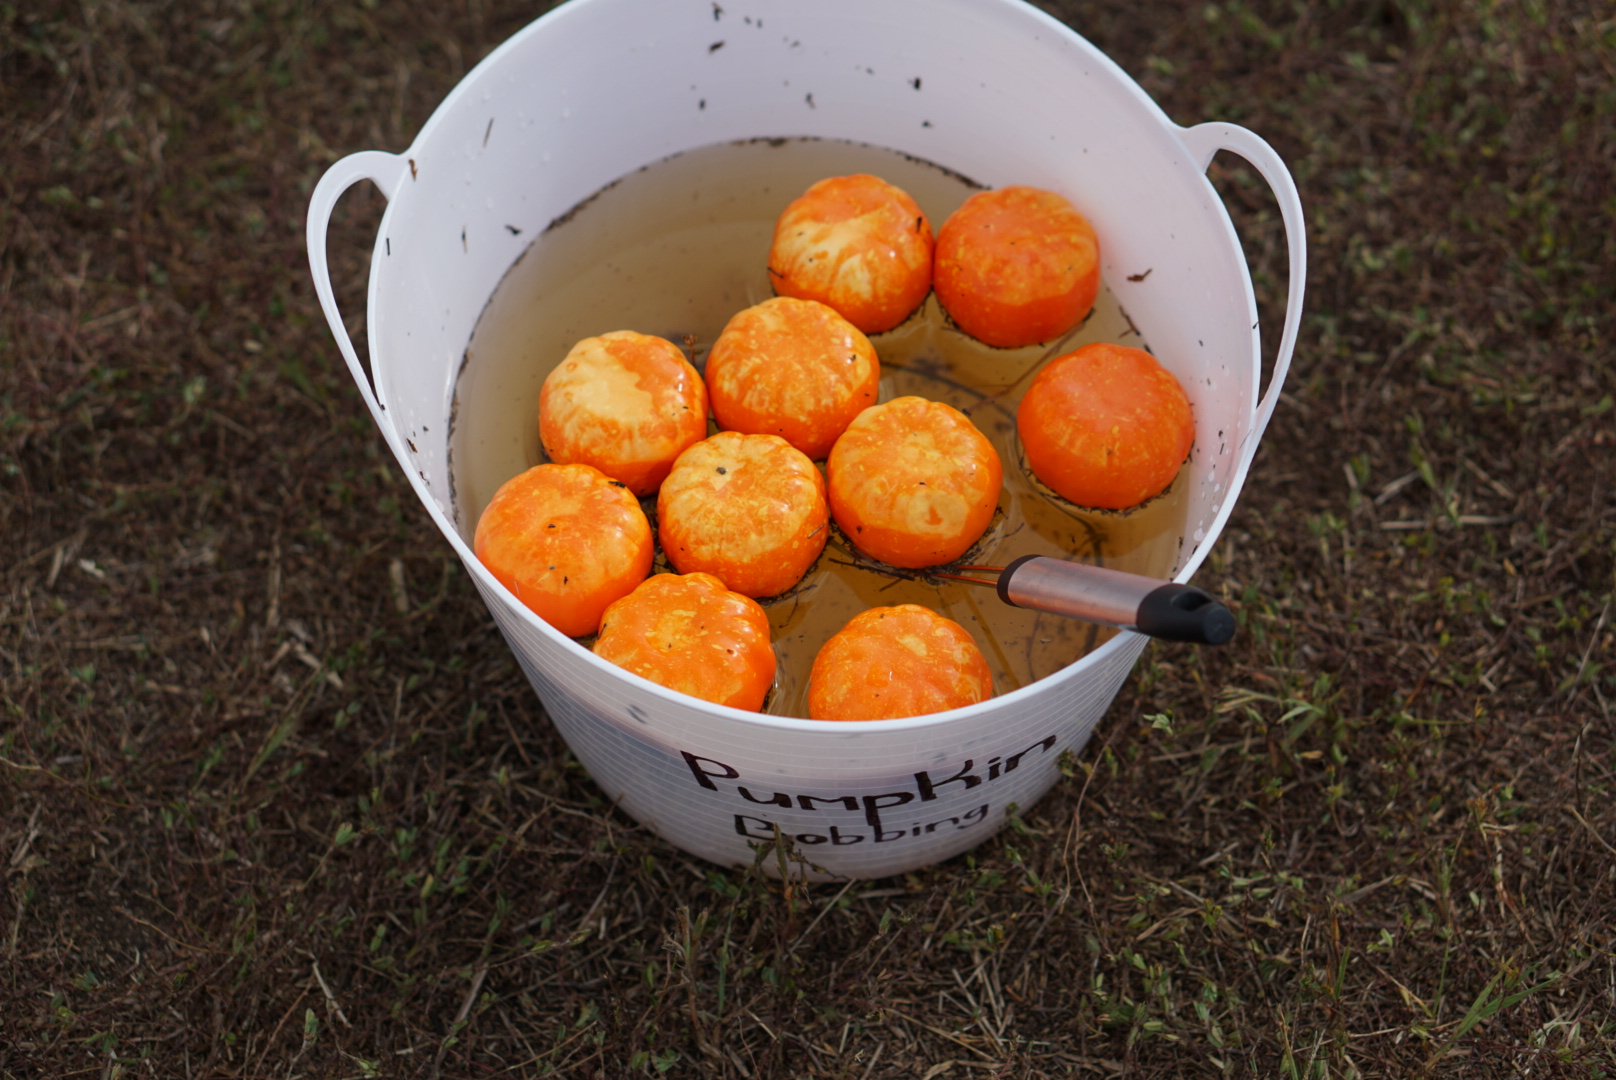 Halloween Games for Kids - Pumpkin Bobbing - Fun Kids Games via Misty Nelson, mom blogger @frostedevents